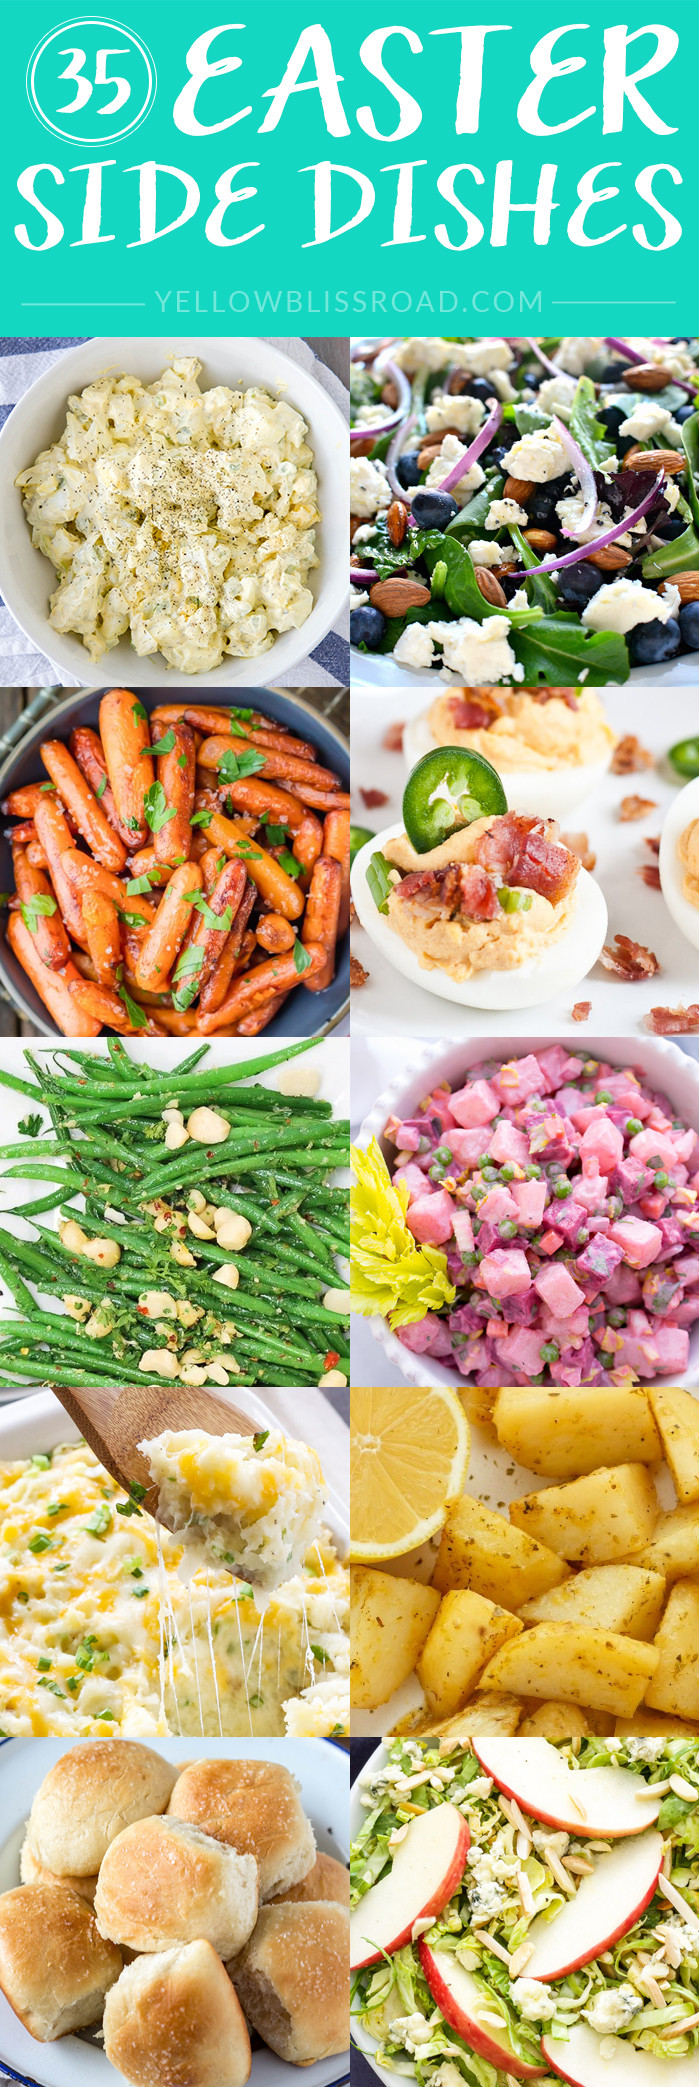 Easter Brunch Side Dishes  Easter Side Dishes More than 50 of the Best Sides for